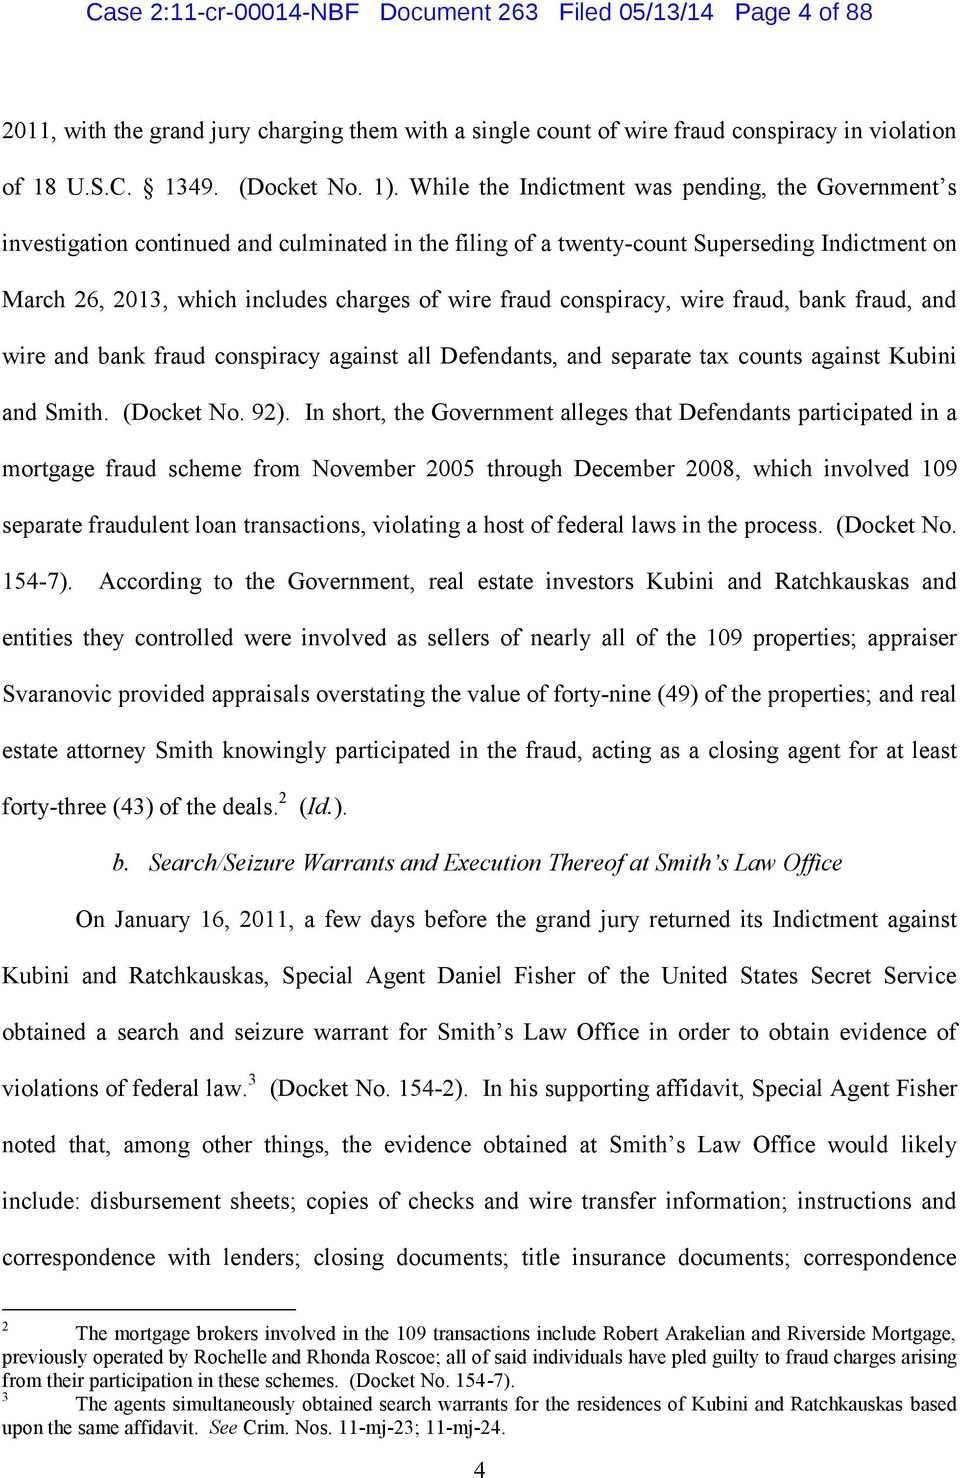 fraud conspiracy, wire fraud, bank fraud, and wire and bank fraud conspiracy against all Defendants, and separate tax counts against Kubini and Smith. (Docket No. 92).